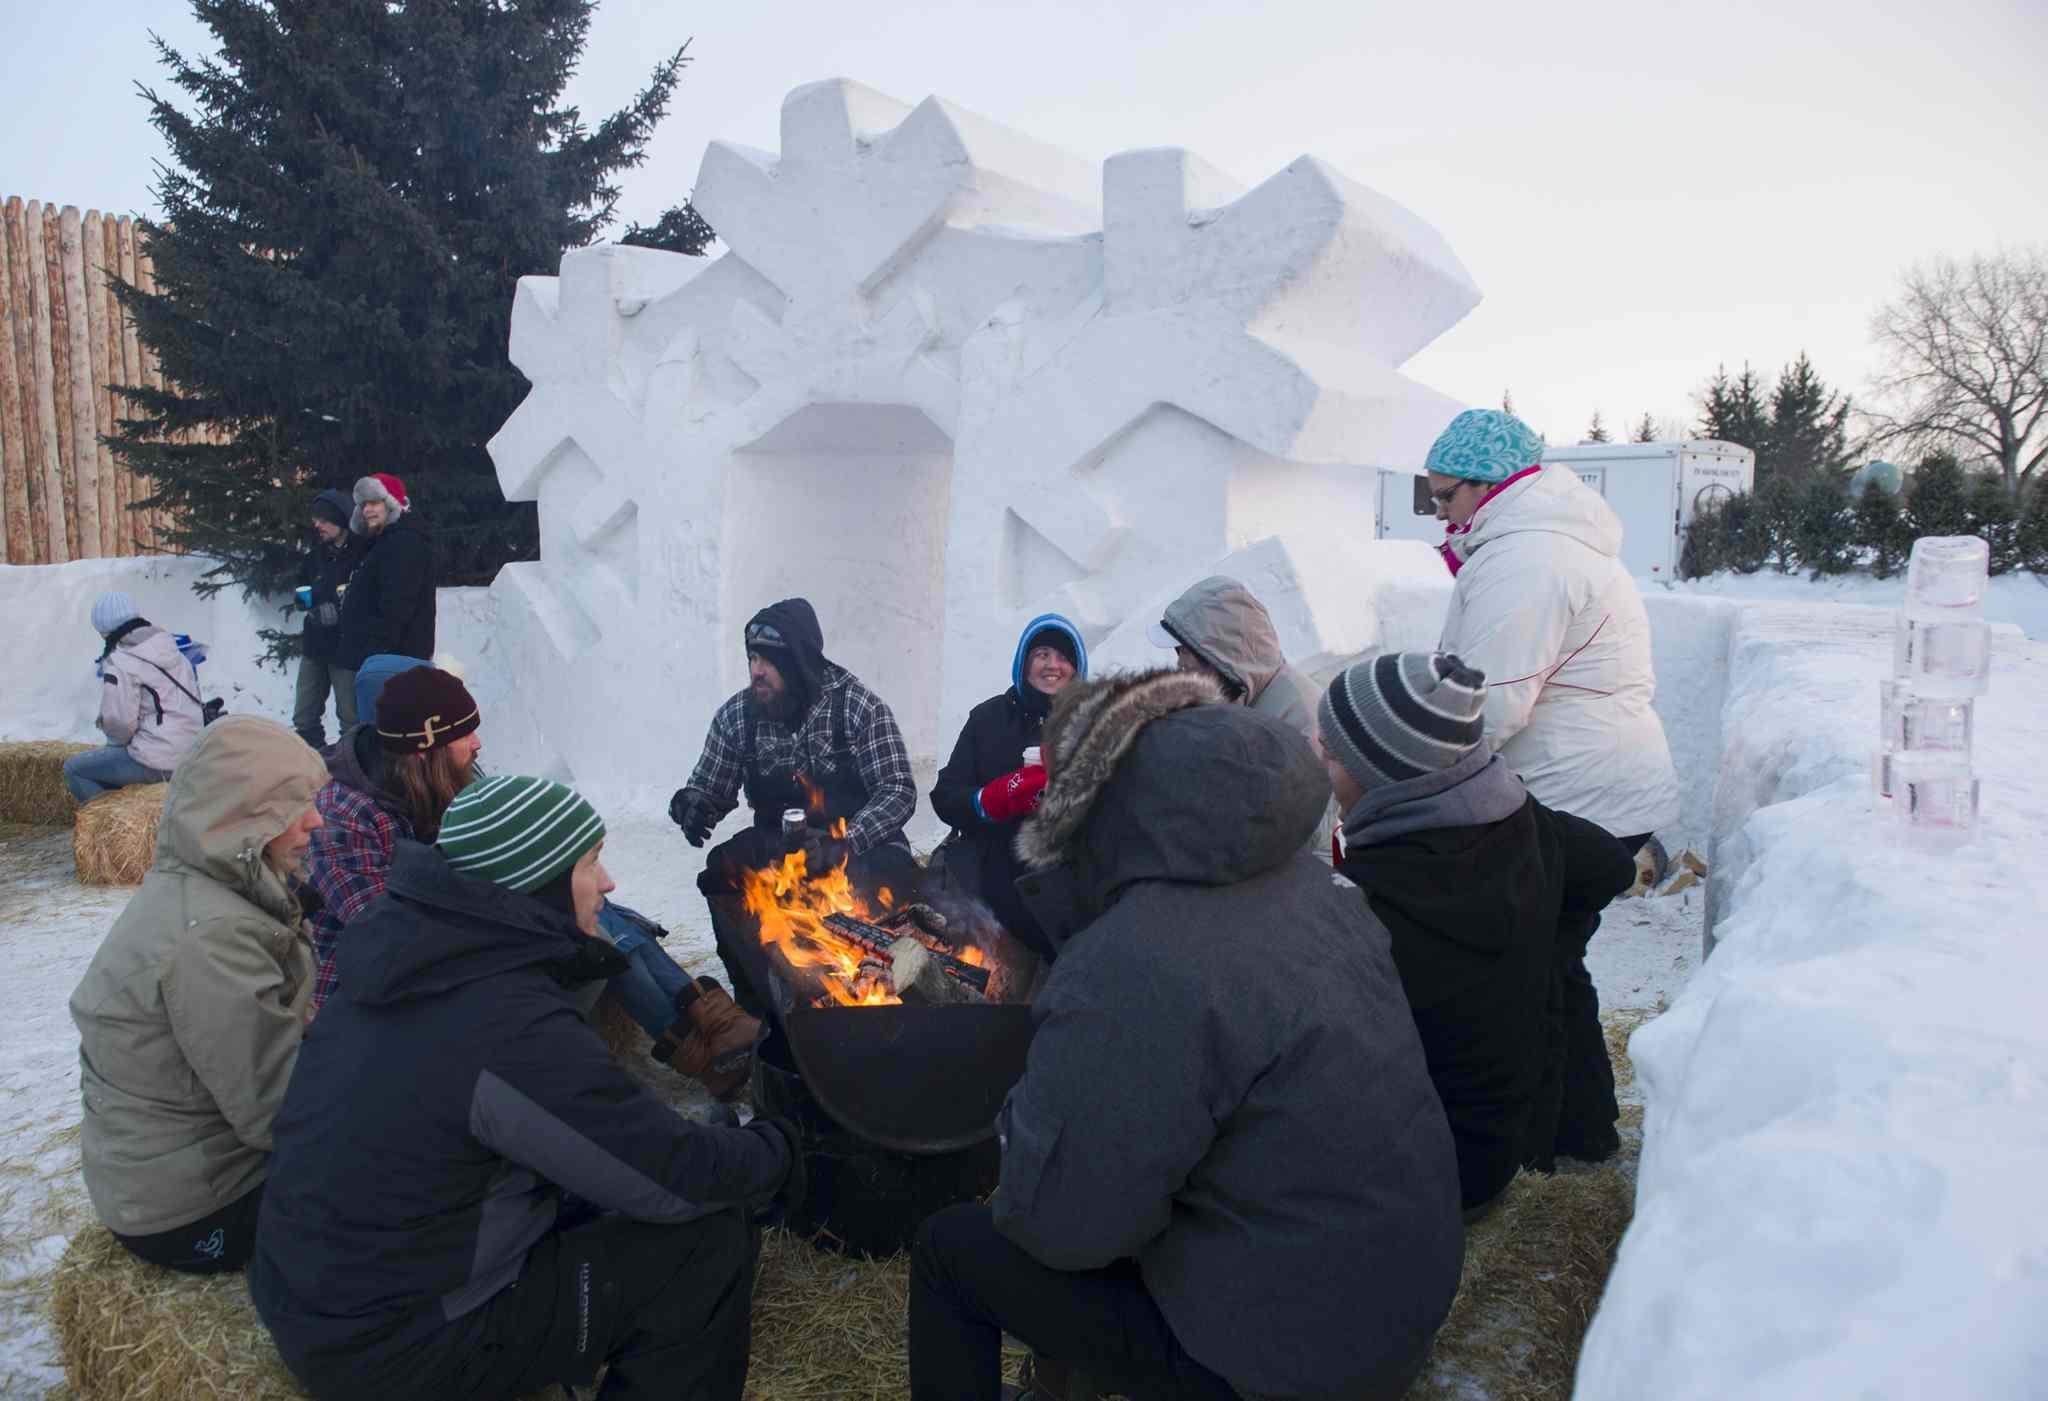 Festival-goers warm up by the fire at Festival du Voyageur on Saturday, Feb. 22.